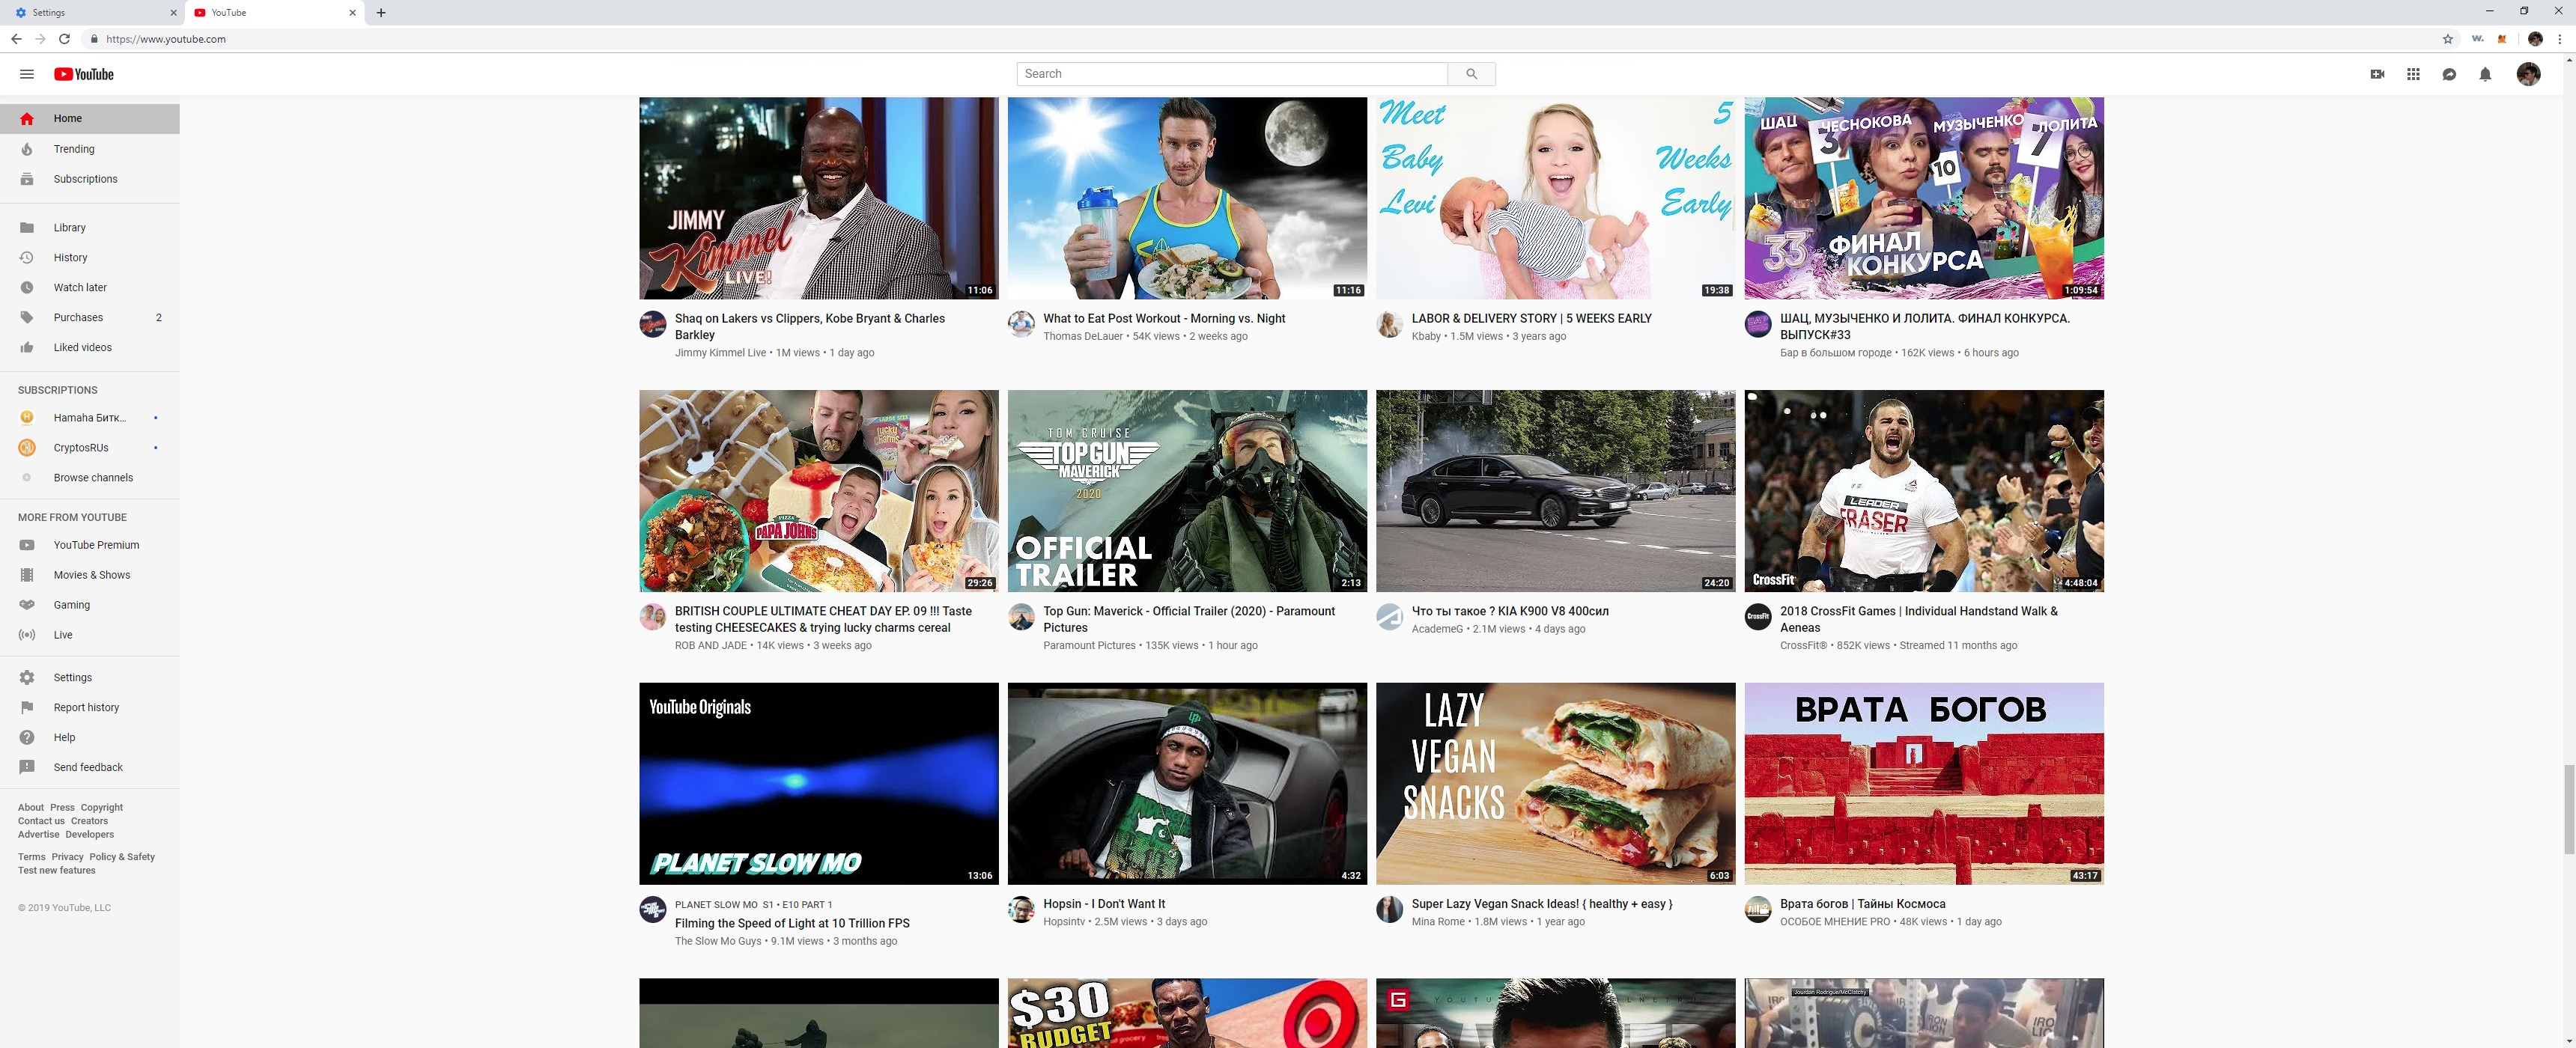 My thumbnails on my homepage are too big when I open up the